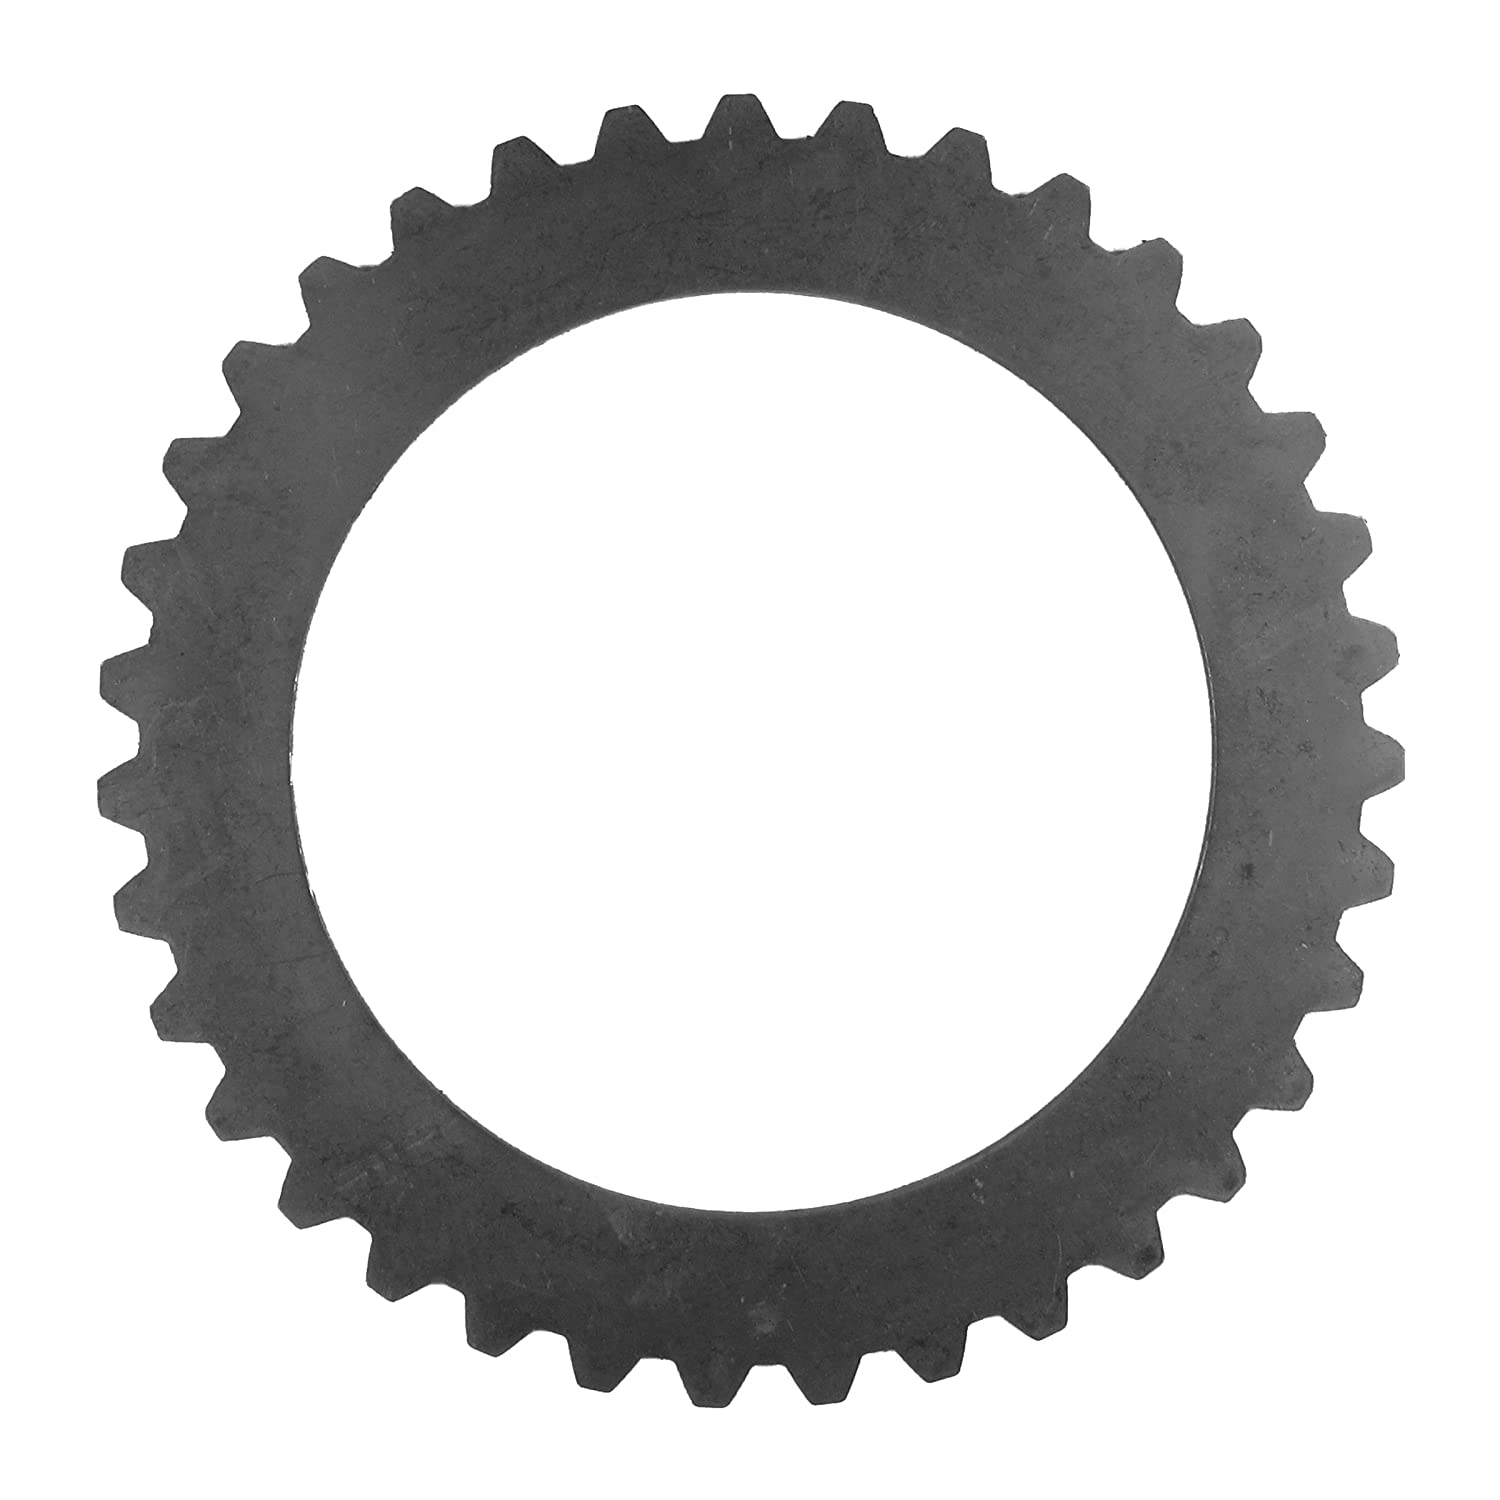 Steel Direct sale of manufacturer Clutch Max 87% OFF Clark 242717 Replaced by Alto # 310723